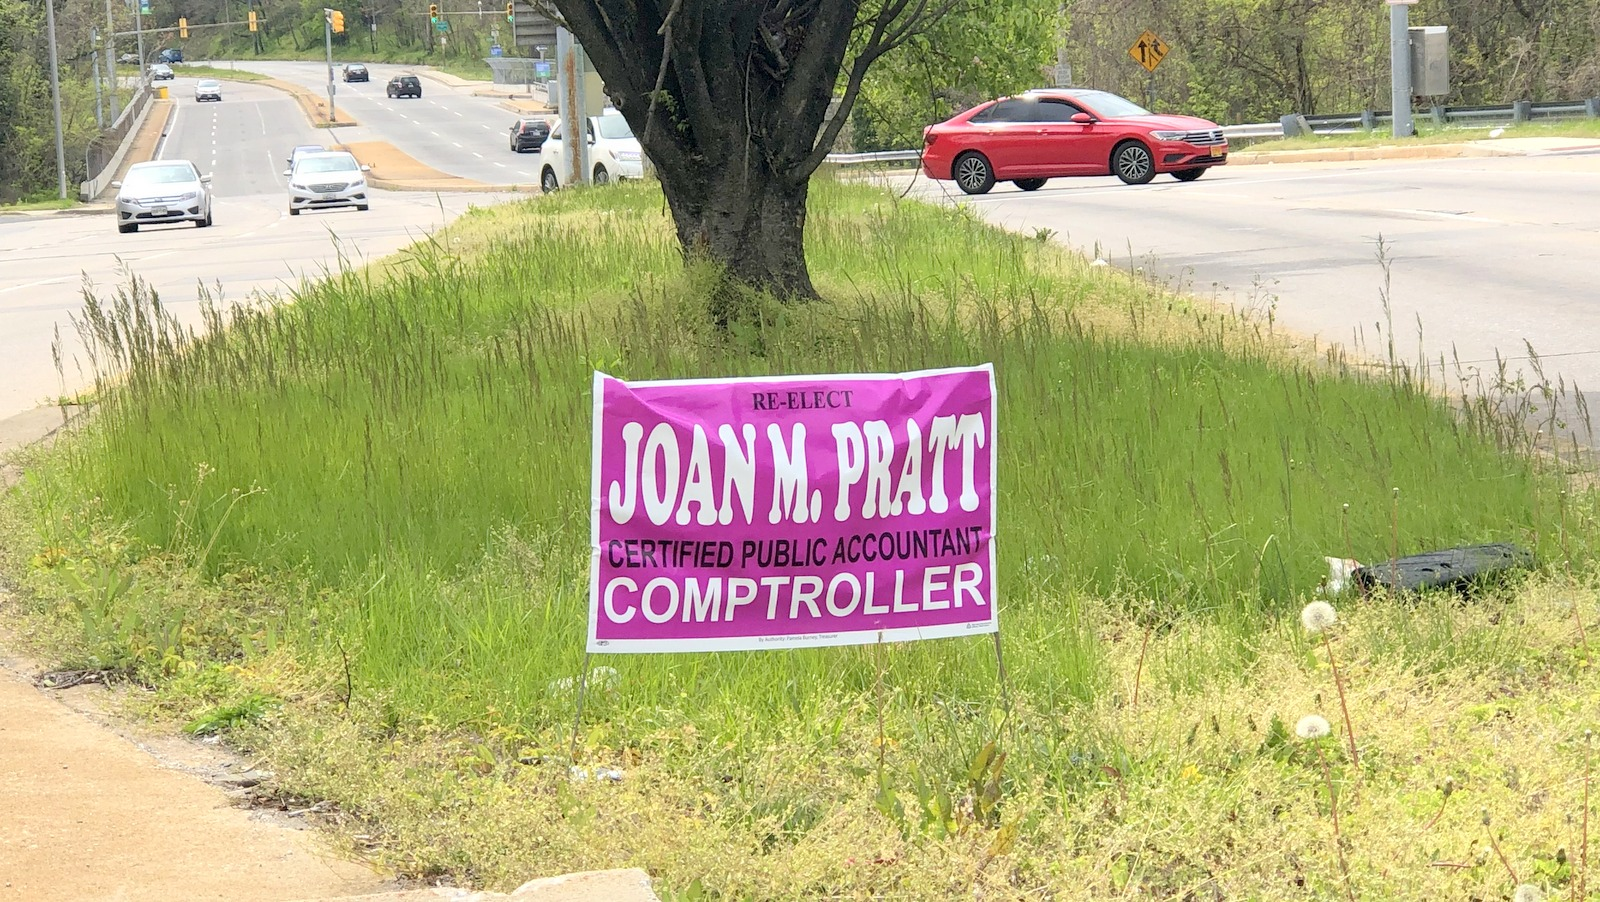 Campaign signs for Joan Pratt can be seen now along Northern Parkway, including this one posted illegally in the median. (Fern Shen)